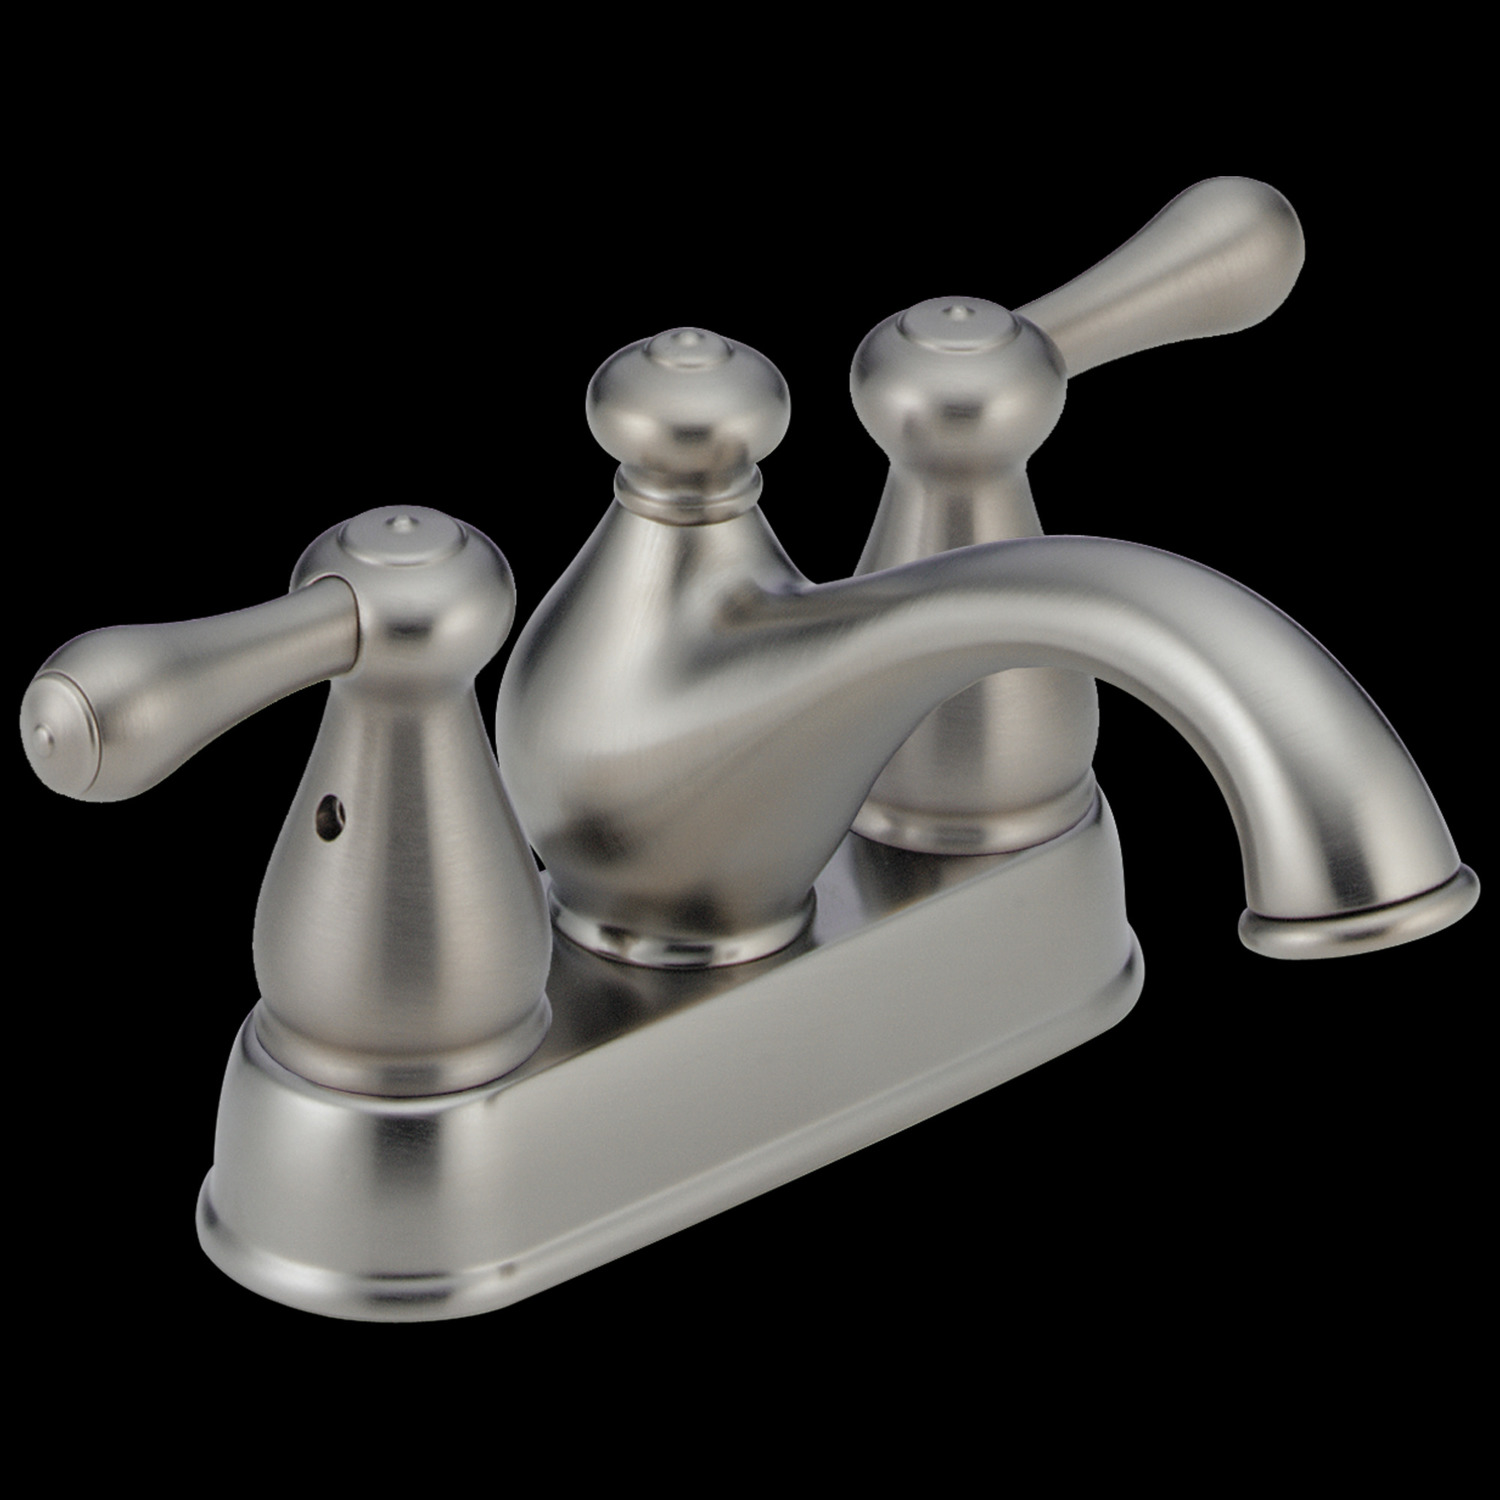 Stainless Two Handle Centerset Bathroom Faucet